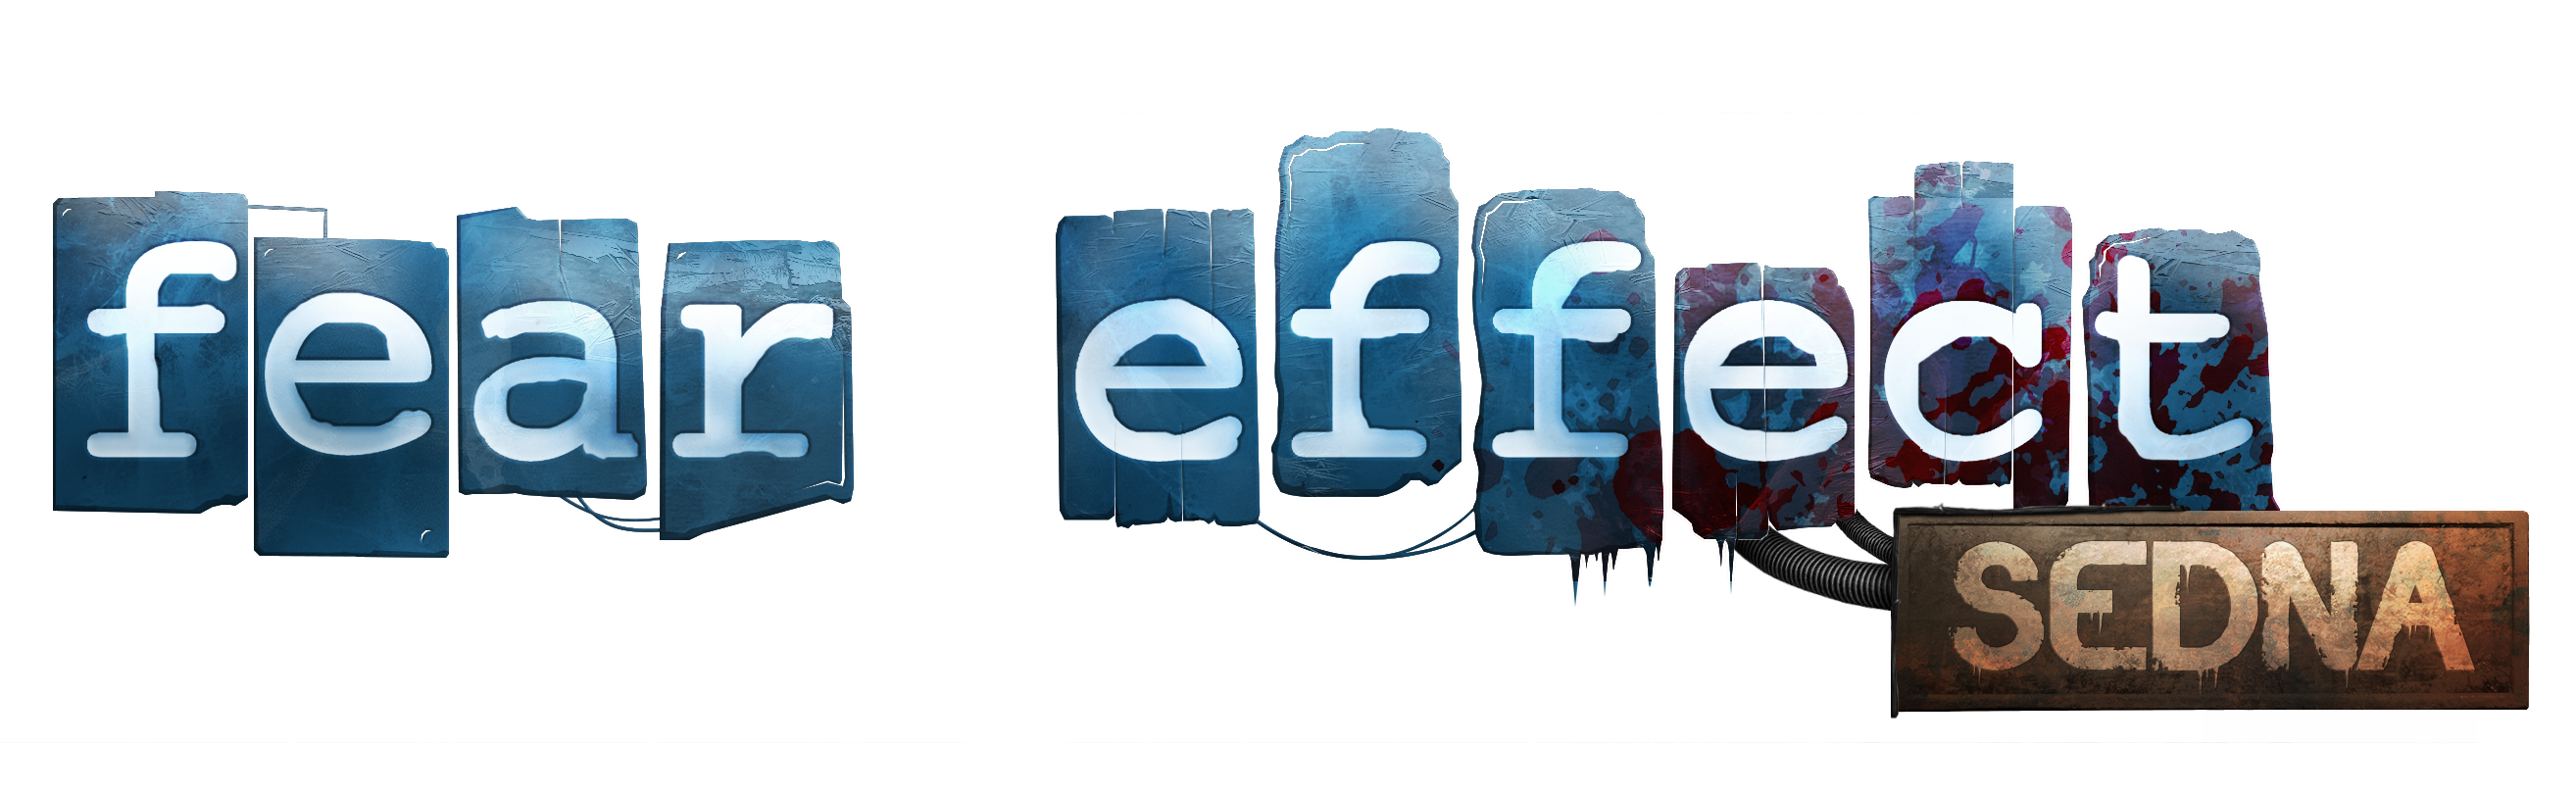 Fear Effect Sedna Logo